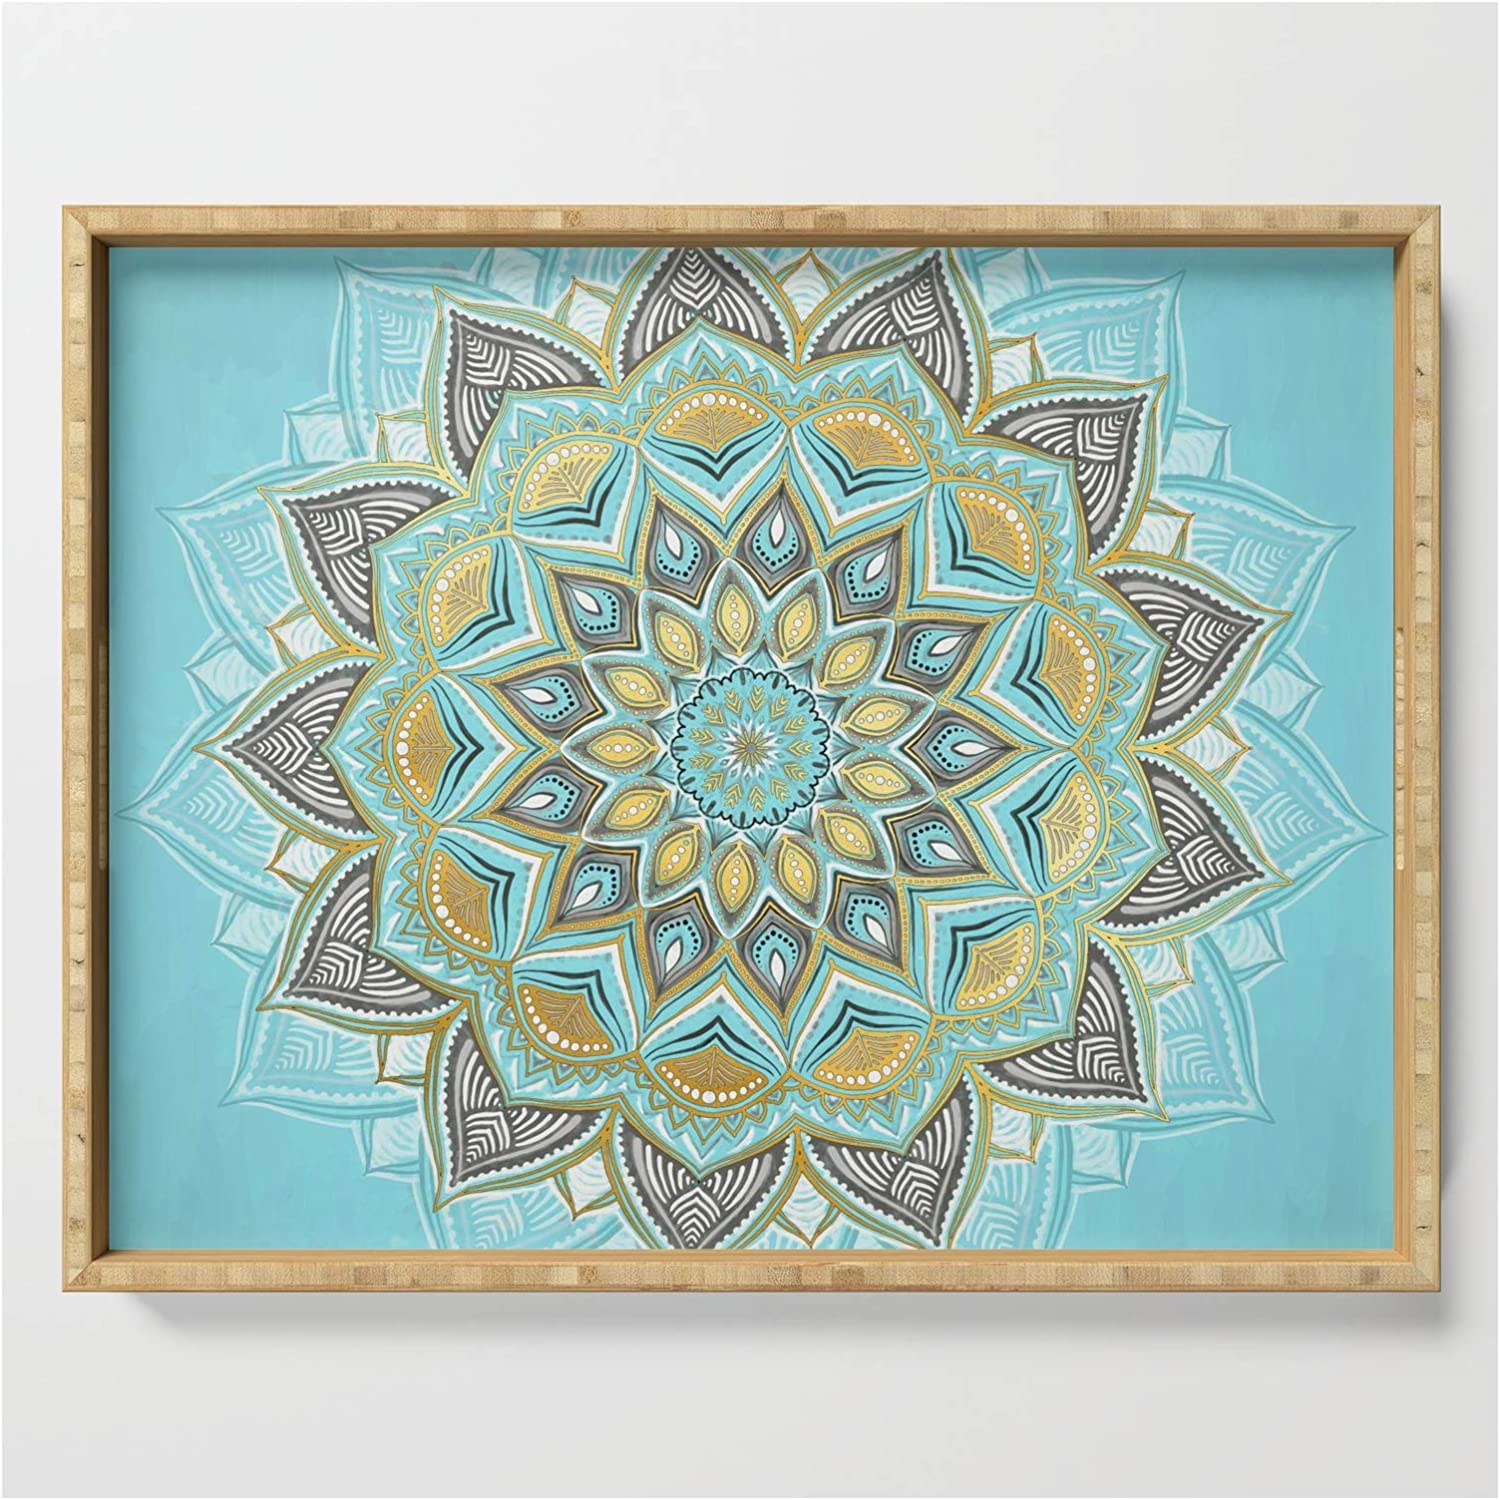 Cyan Golden Yellow Sunny Complete Free Shipping Tampa Mall Skies on Medallion Serving by Micklyn